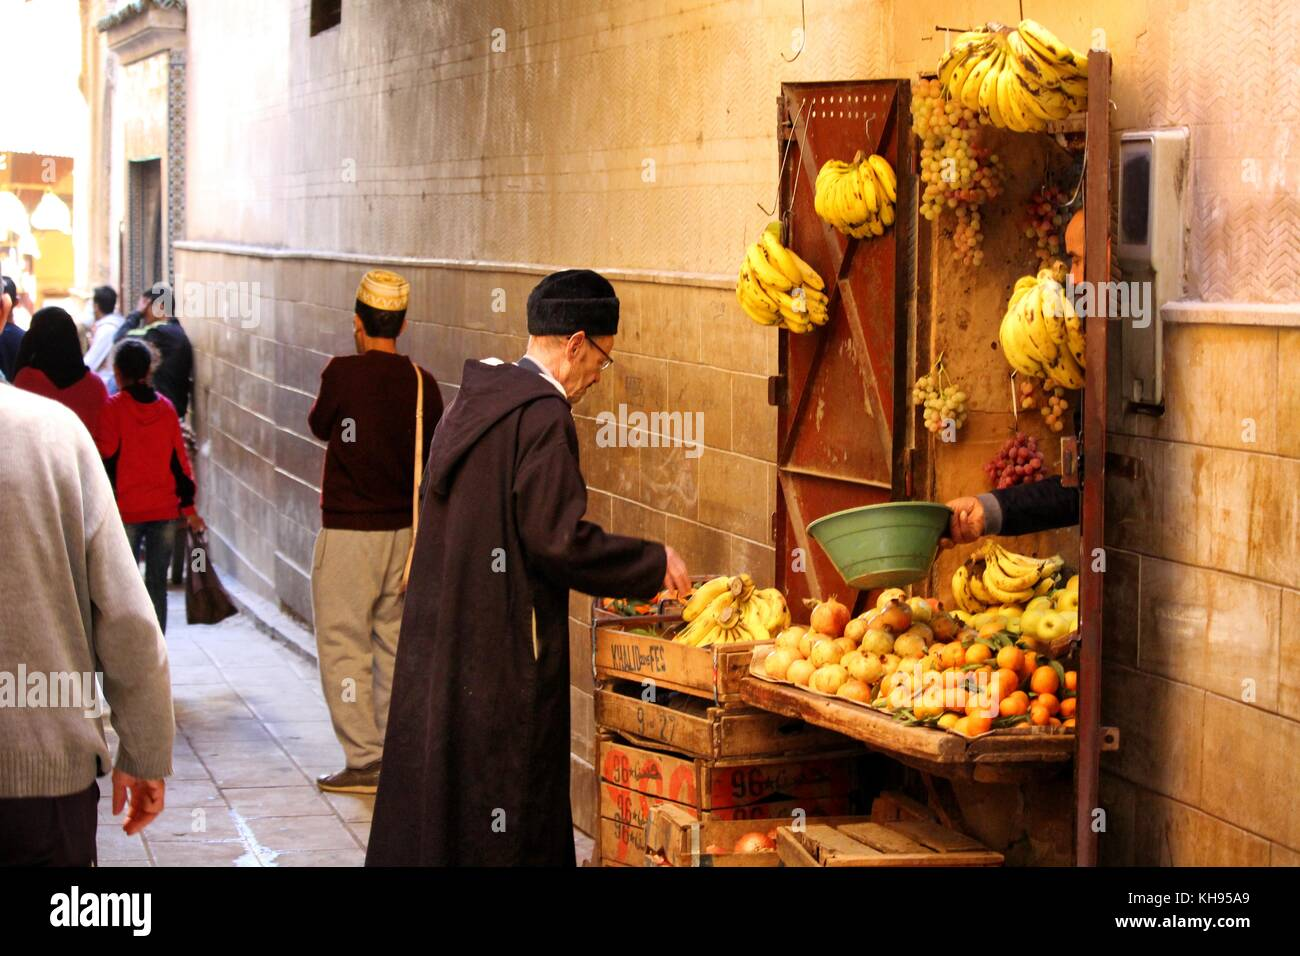 Fez, Morrocco - November 8, 2017: Local people buying goods at a street fruit and vegetables market in the Fez Medina - Stock Image